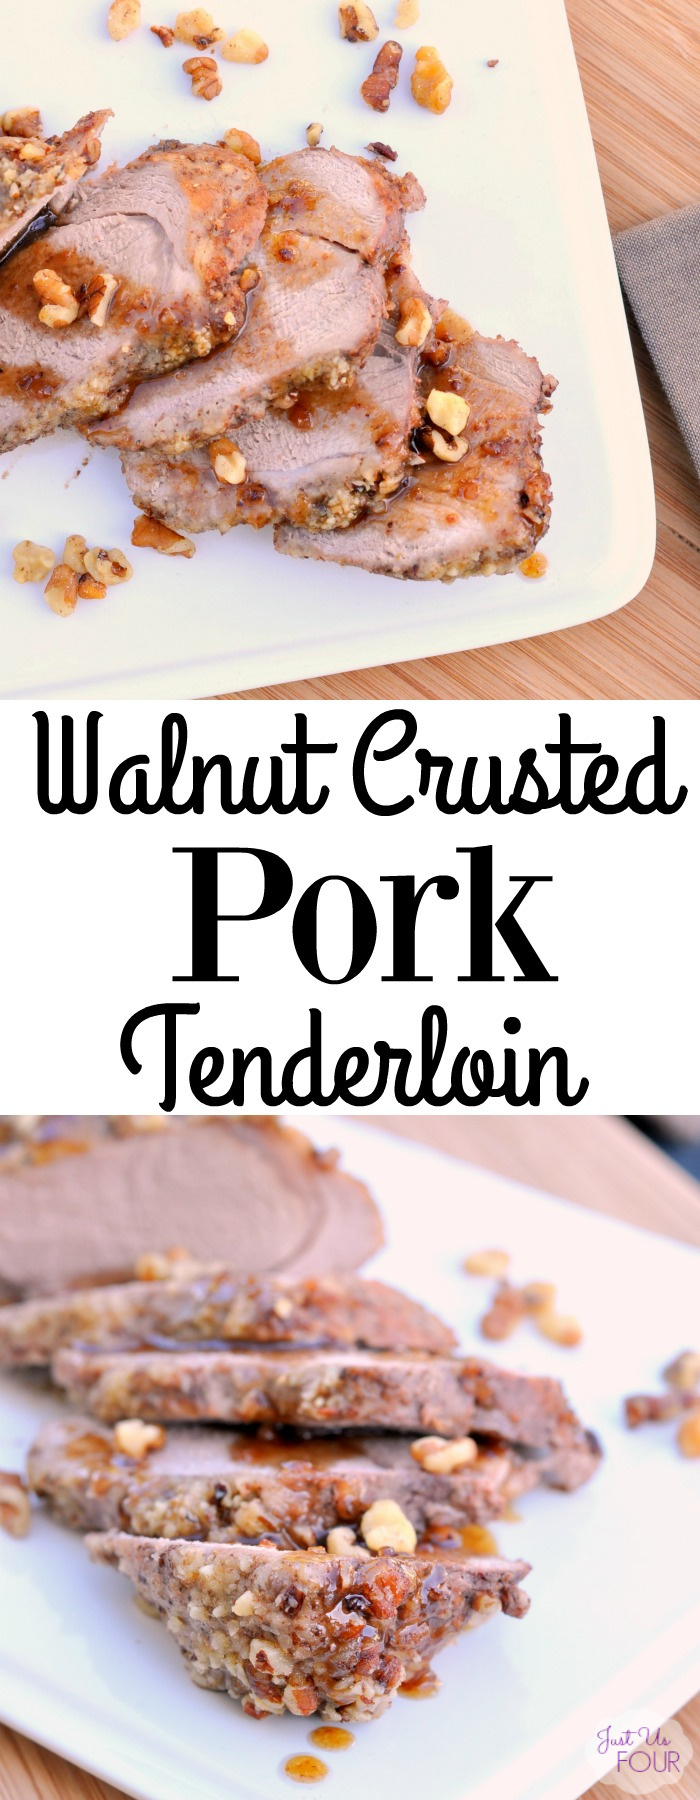 """Walnut Crusted Pork Tenderloin is the perfect """"fancy"""" meal that you can make quickly and easily."""